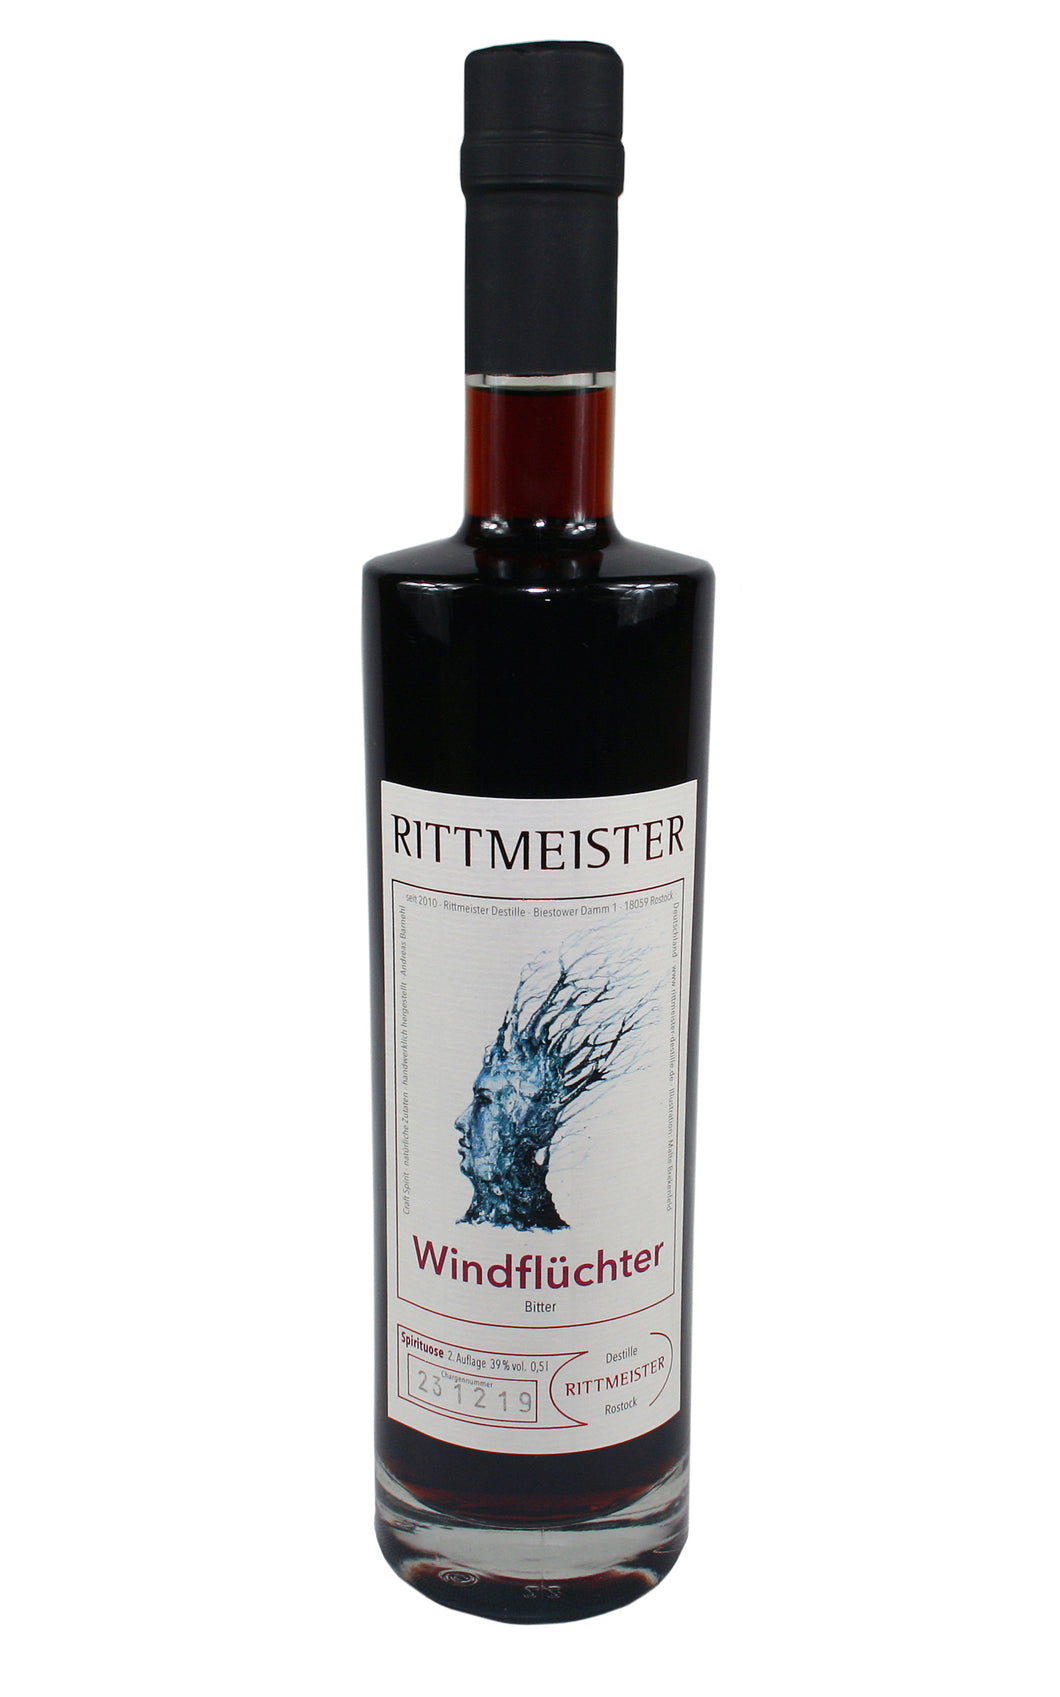 Rittmeister - Windflüchter, limited Edition (39% Vol.) /Bitter